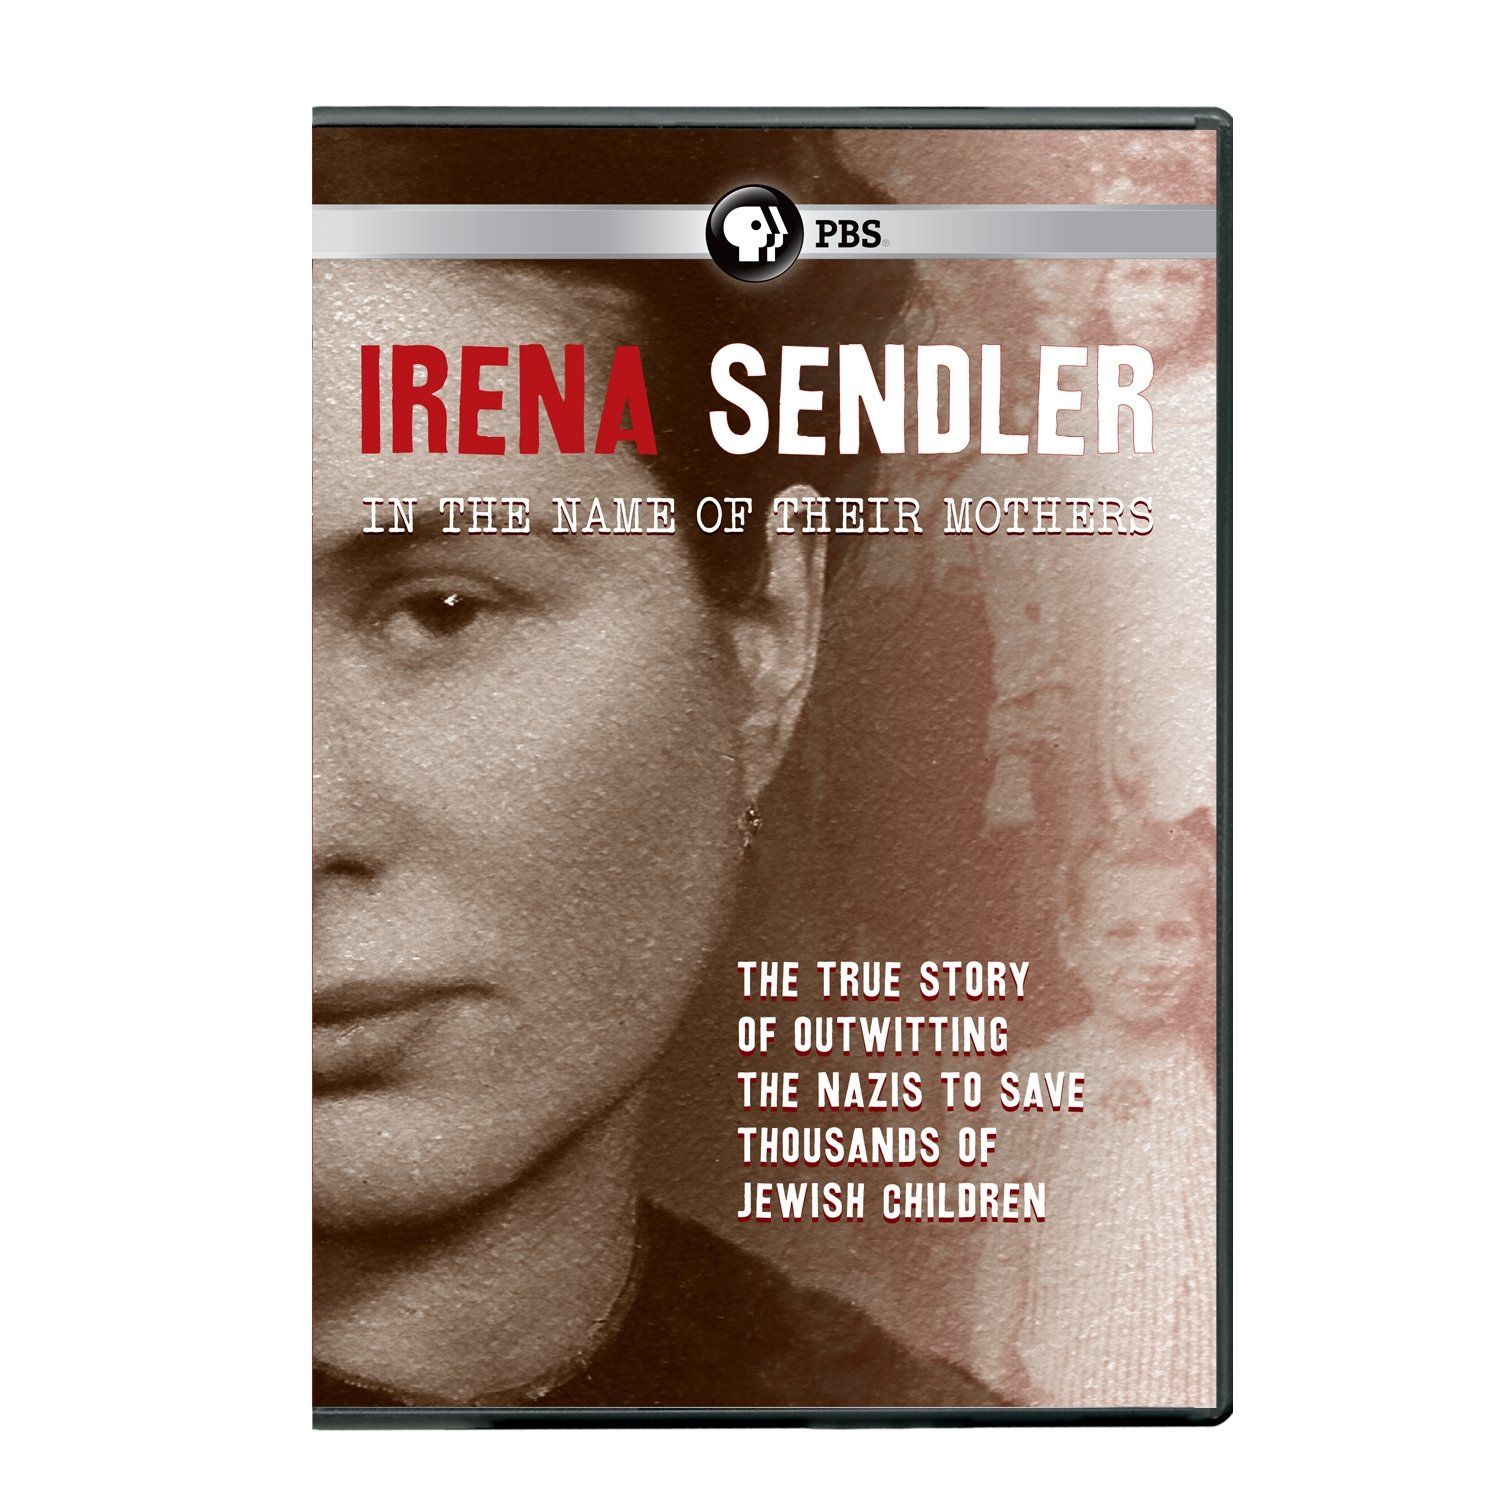 Irena Sendler In The Name Of Their Mothers Mary Skinner Movies Tv